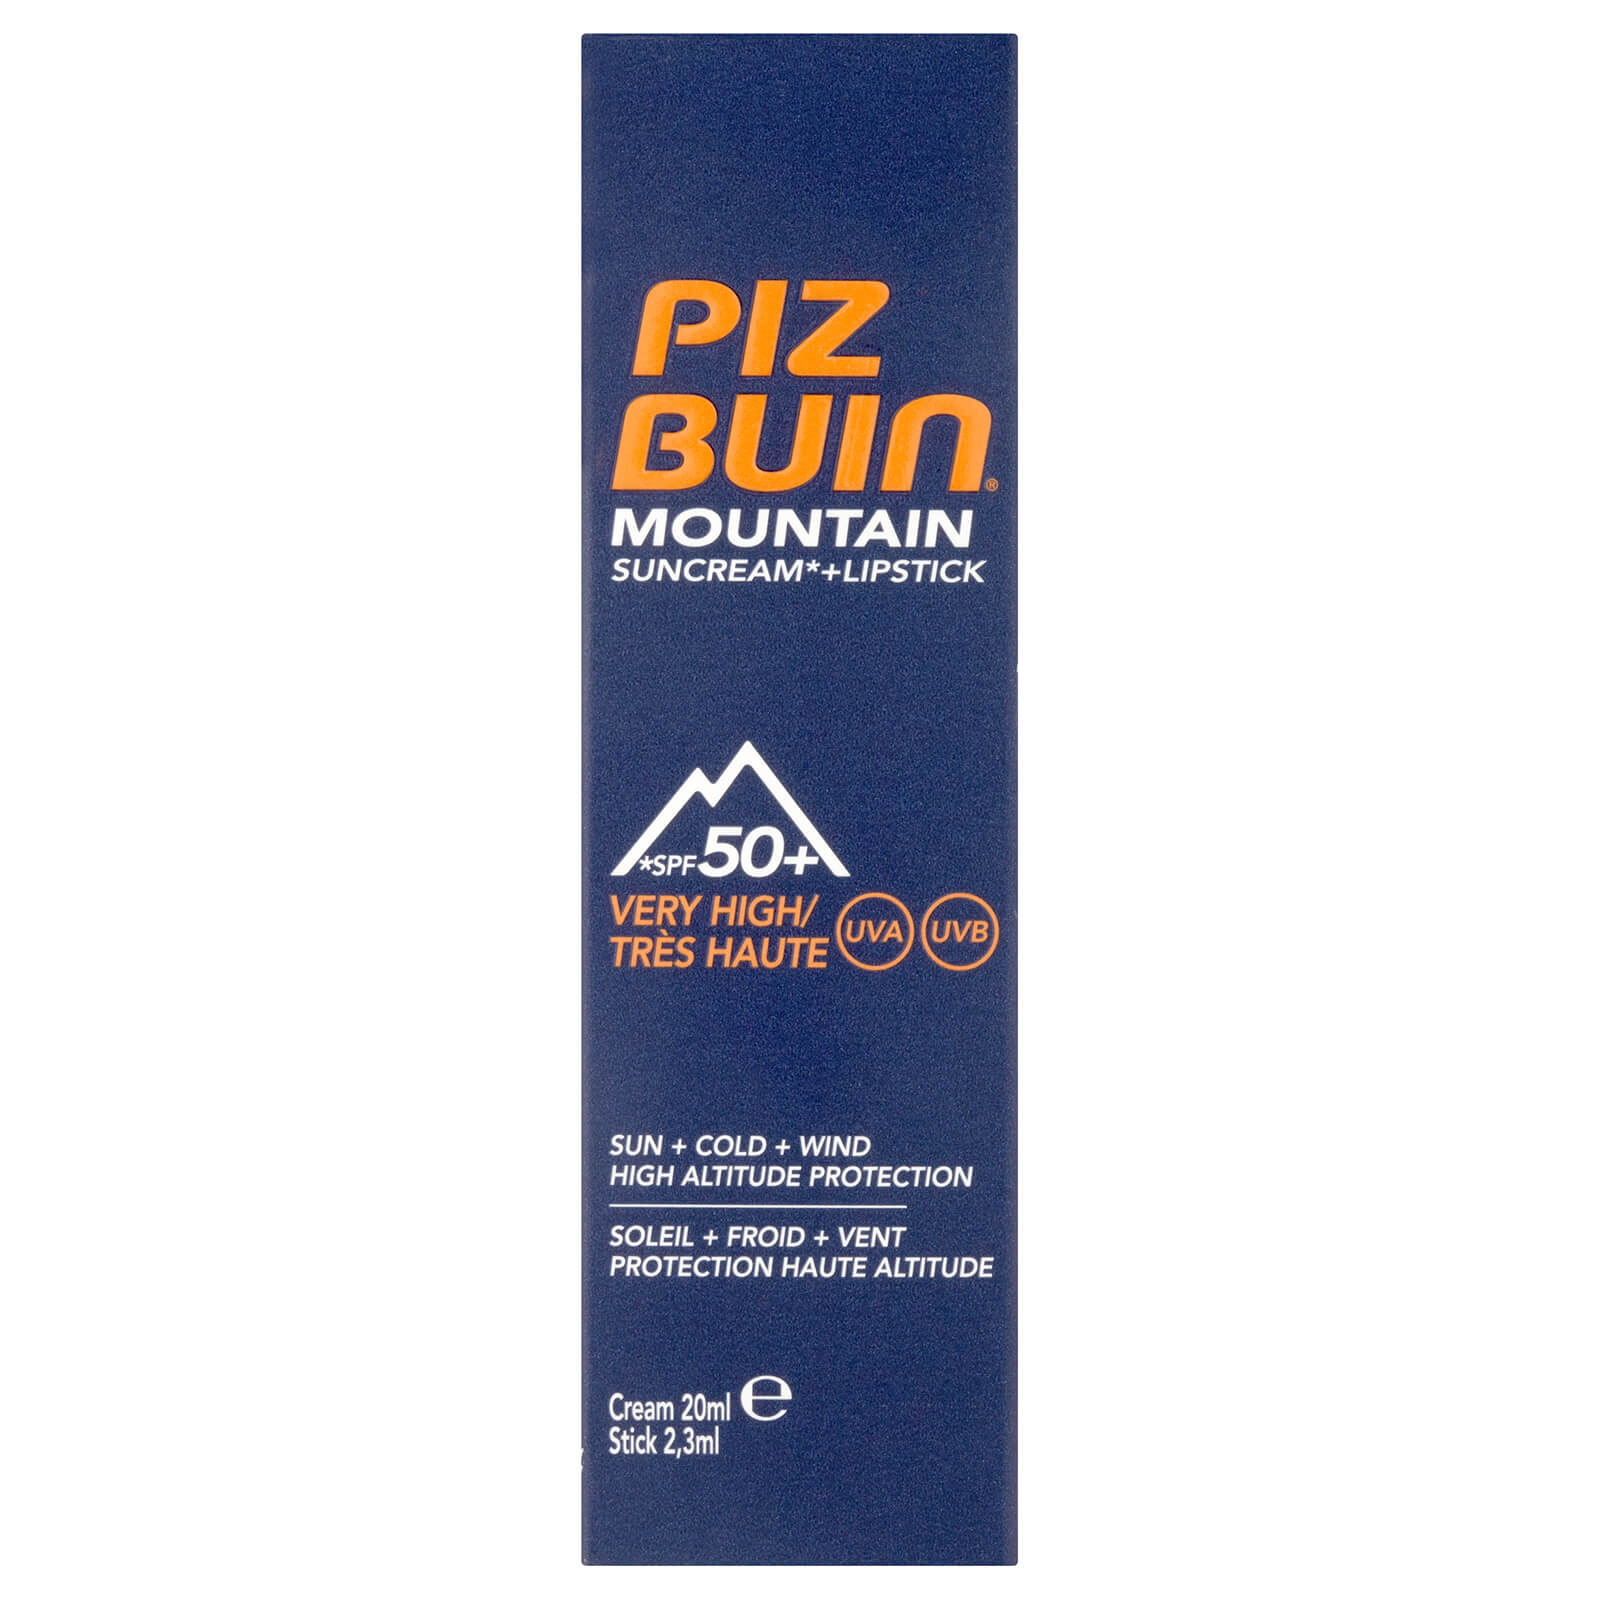 Piz Buin Mountain Sun Cream And Lipstick Very High Spf50 Free Us Shipping Lookfantastic